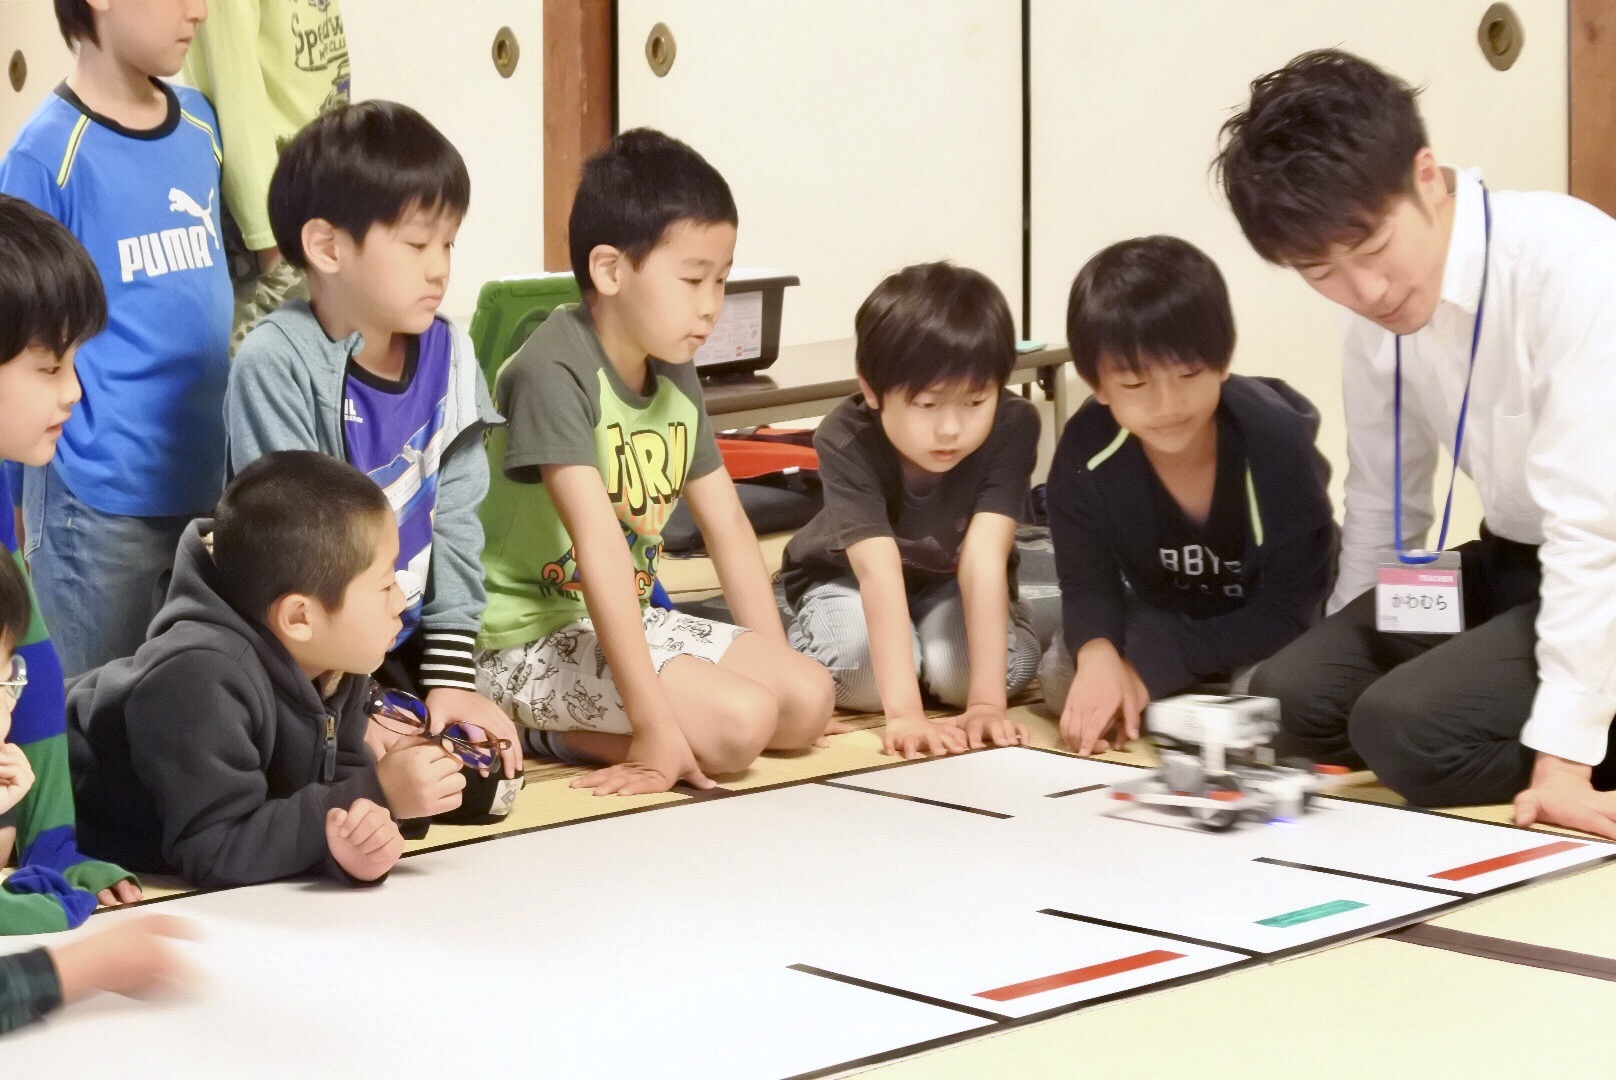 Robotics Classes In Temples Tradition And Innovation In Japan Robohub